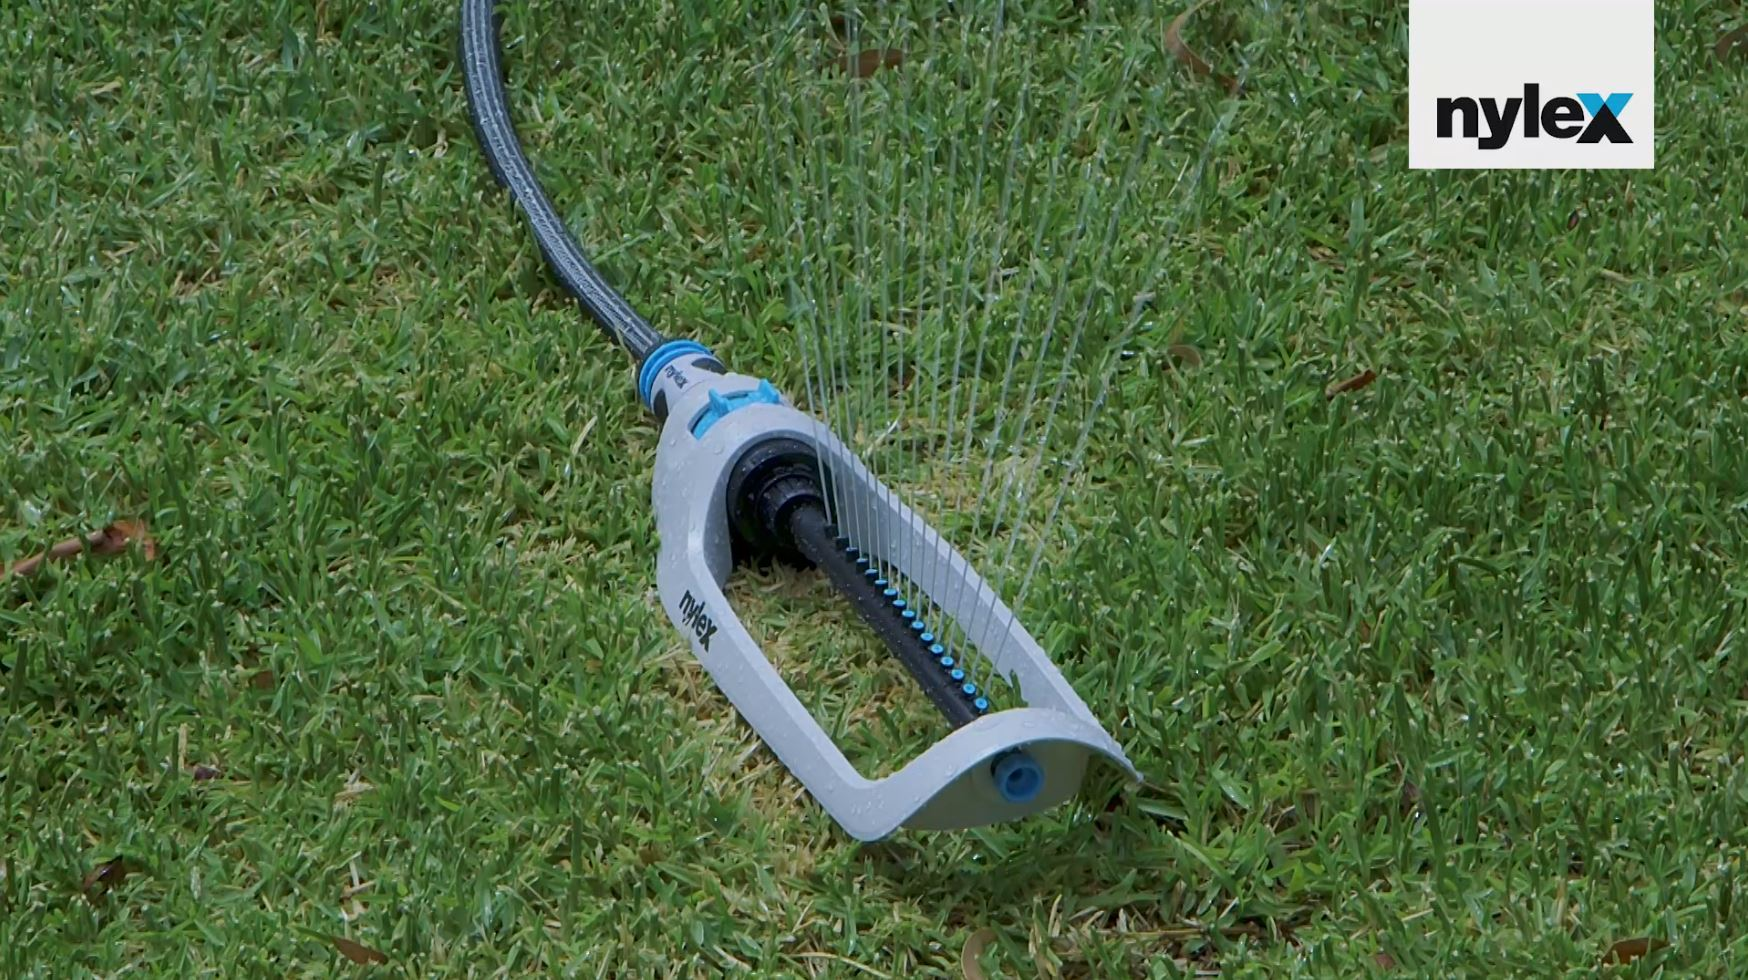 Nylex Essential Watering Tips – Watering Lawns